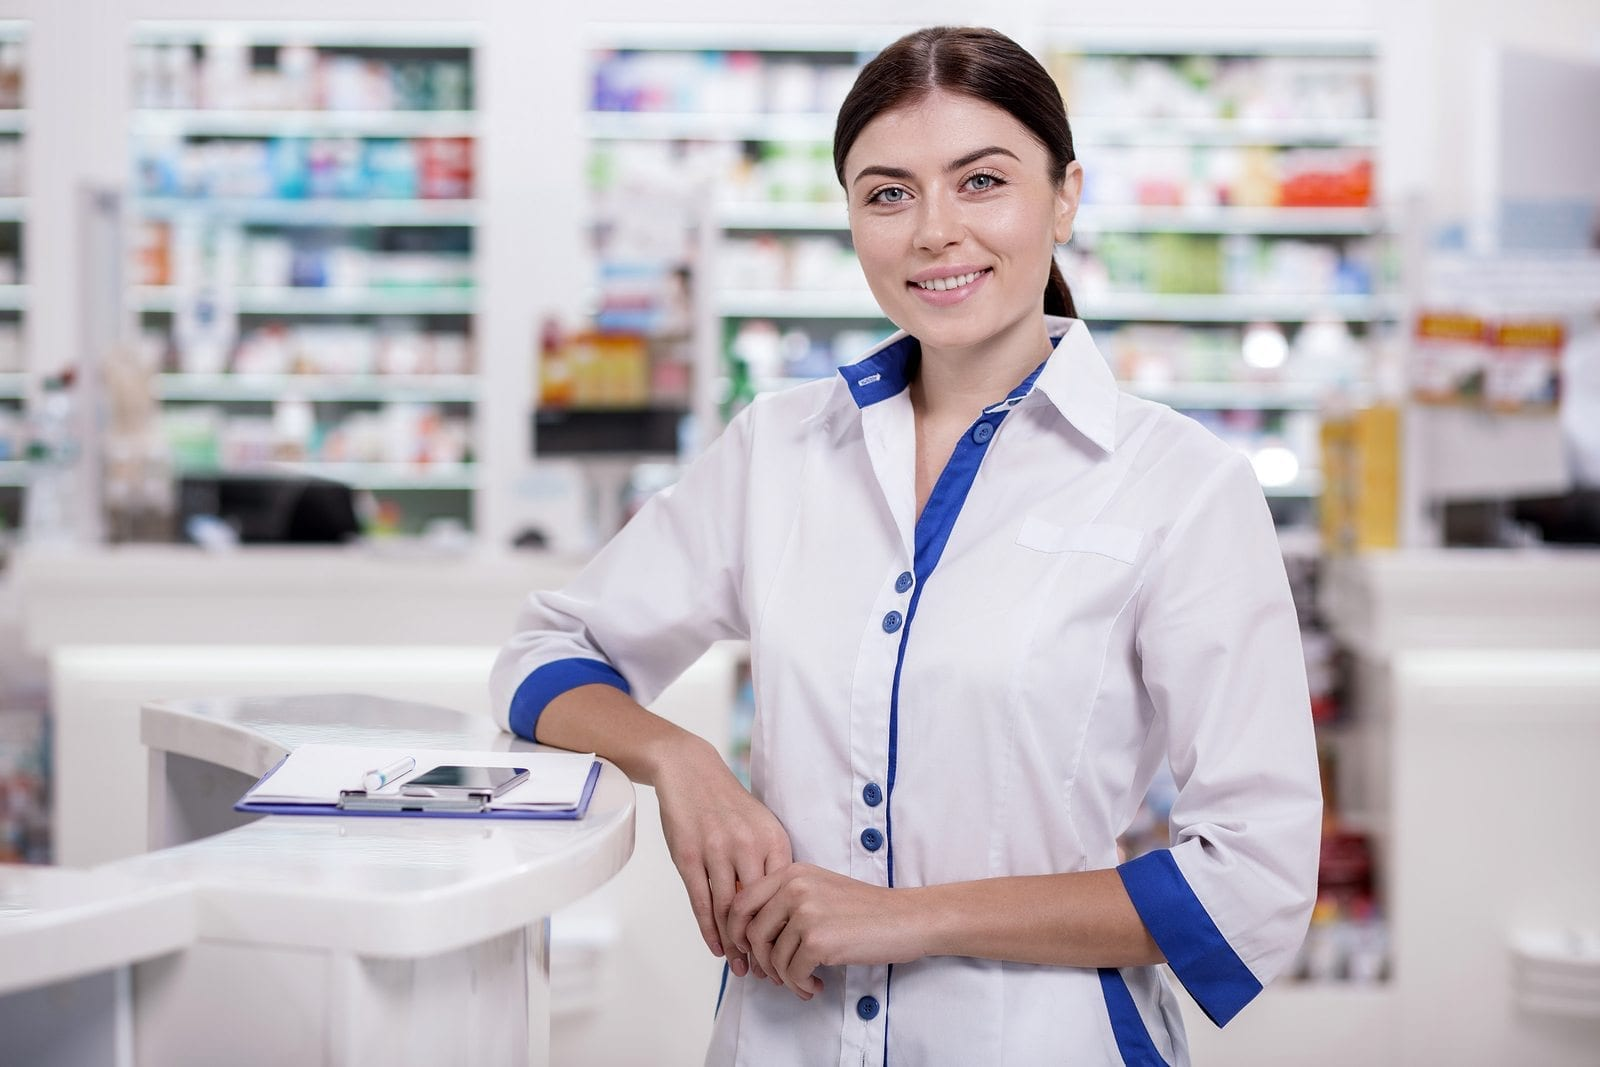 pharmacy technician essay Most pharmacy technicians work in community and hospital pharmacy pharmaceutical production or sales in the pharmaceutical industry prisons, primary care organisations, education and training, the military, veterinary pharmacy and pharmacy organisations.